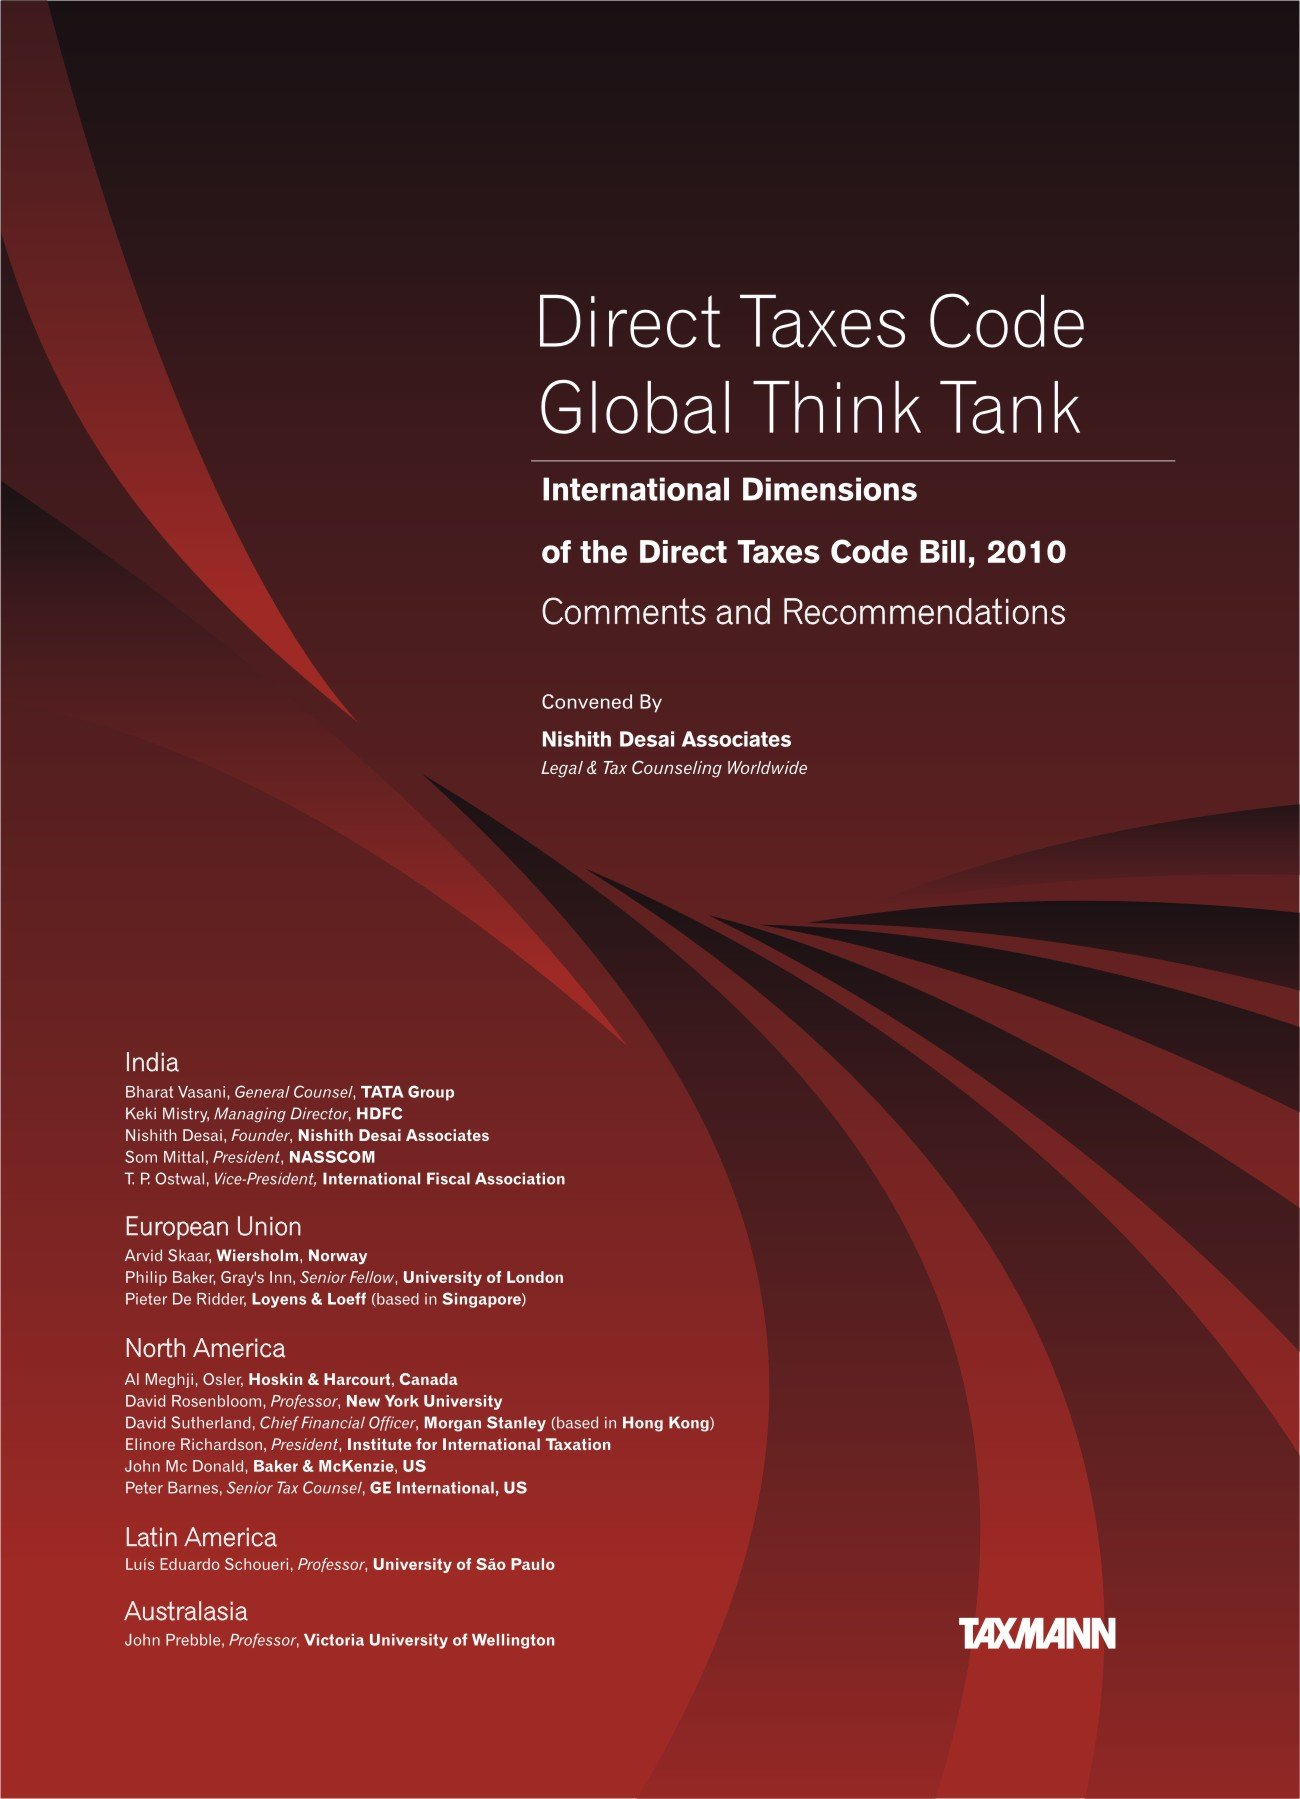 Buy Direct Taxes Code: Global Think Tank Book Online at Low Prices